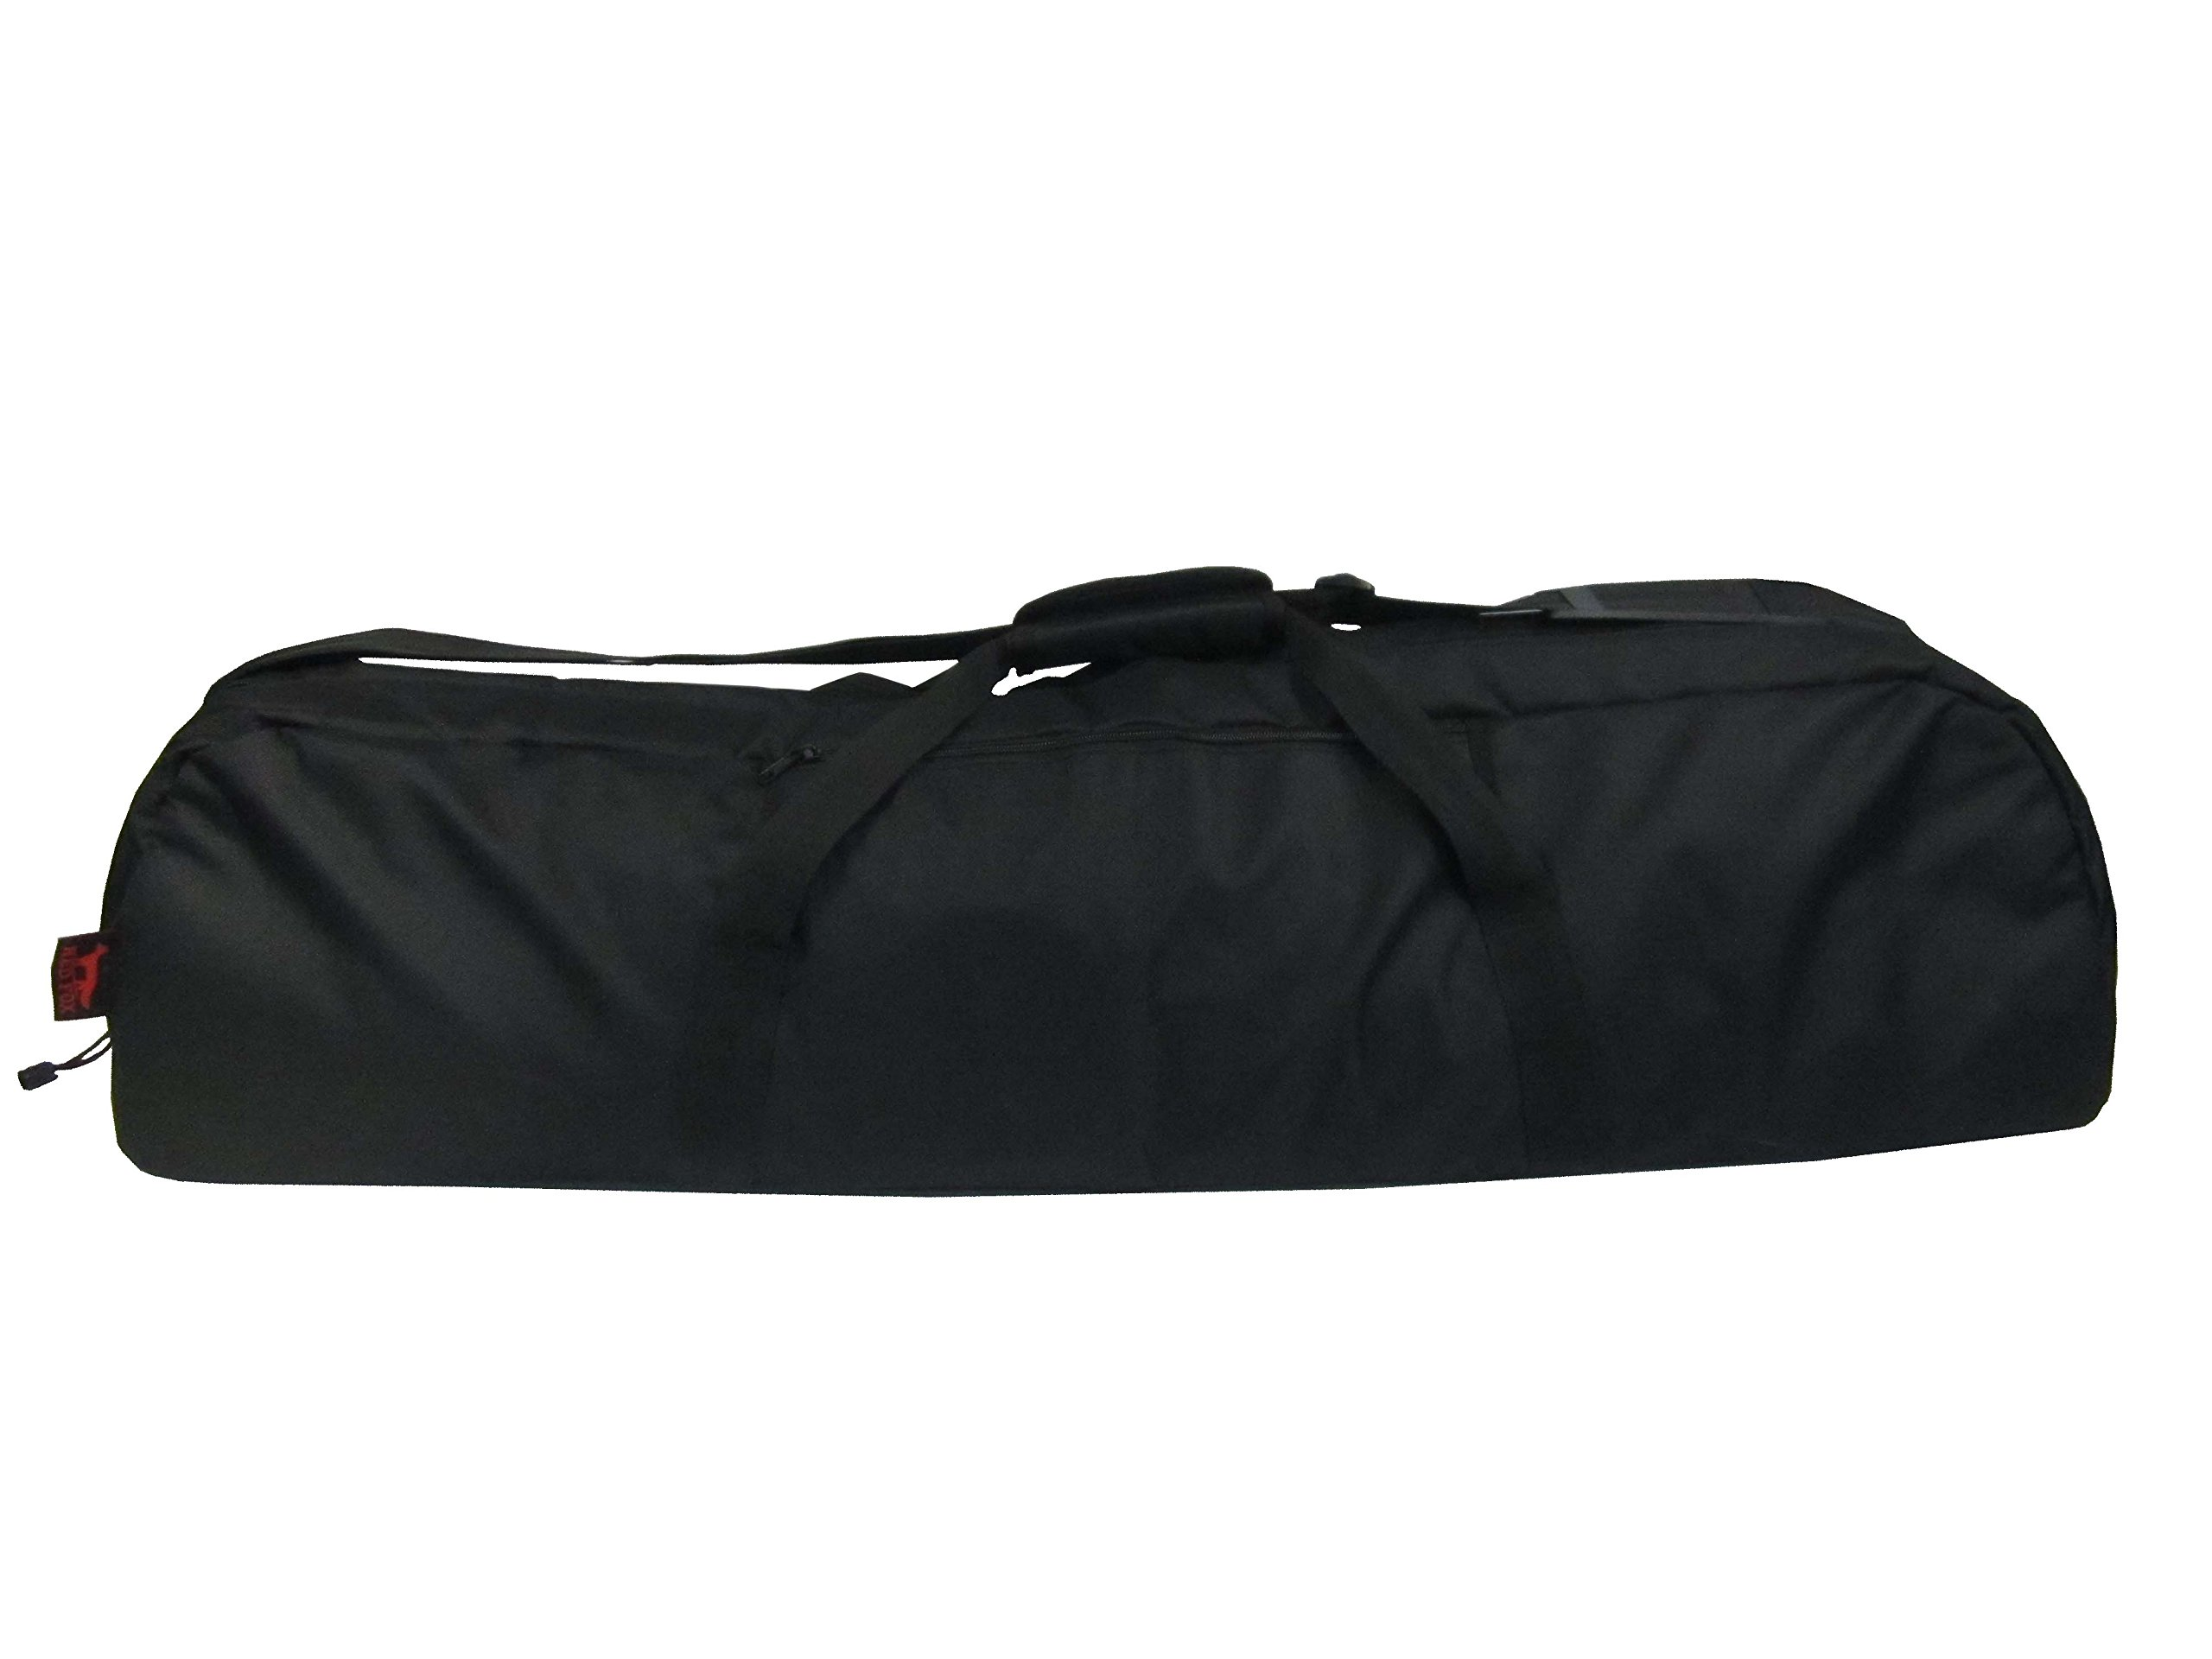 Telescope Bag for Orion 09798 Telescope Case for Travel | Red Fox Padded Telescope Carrying Bag fits Orion 09798 Celestron 127EQ by Red Fox